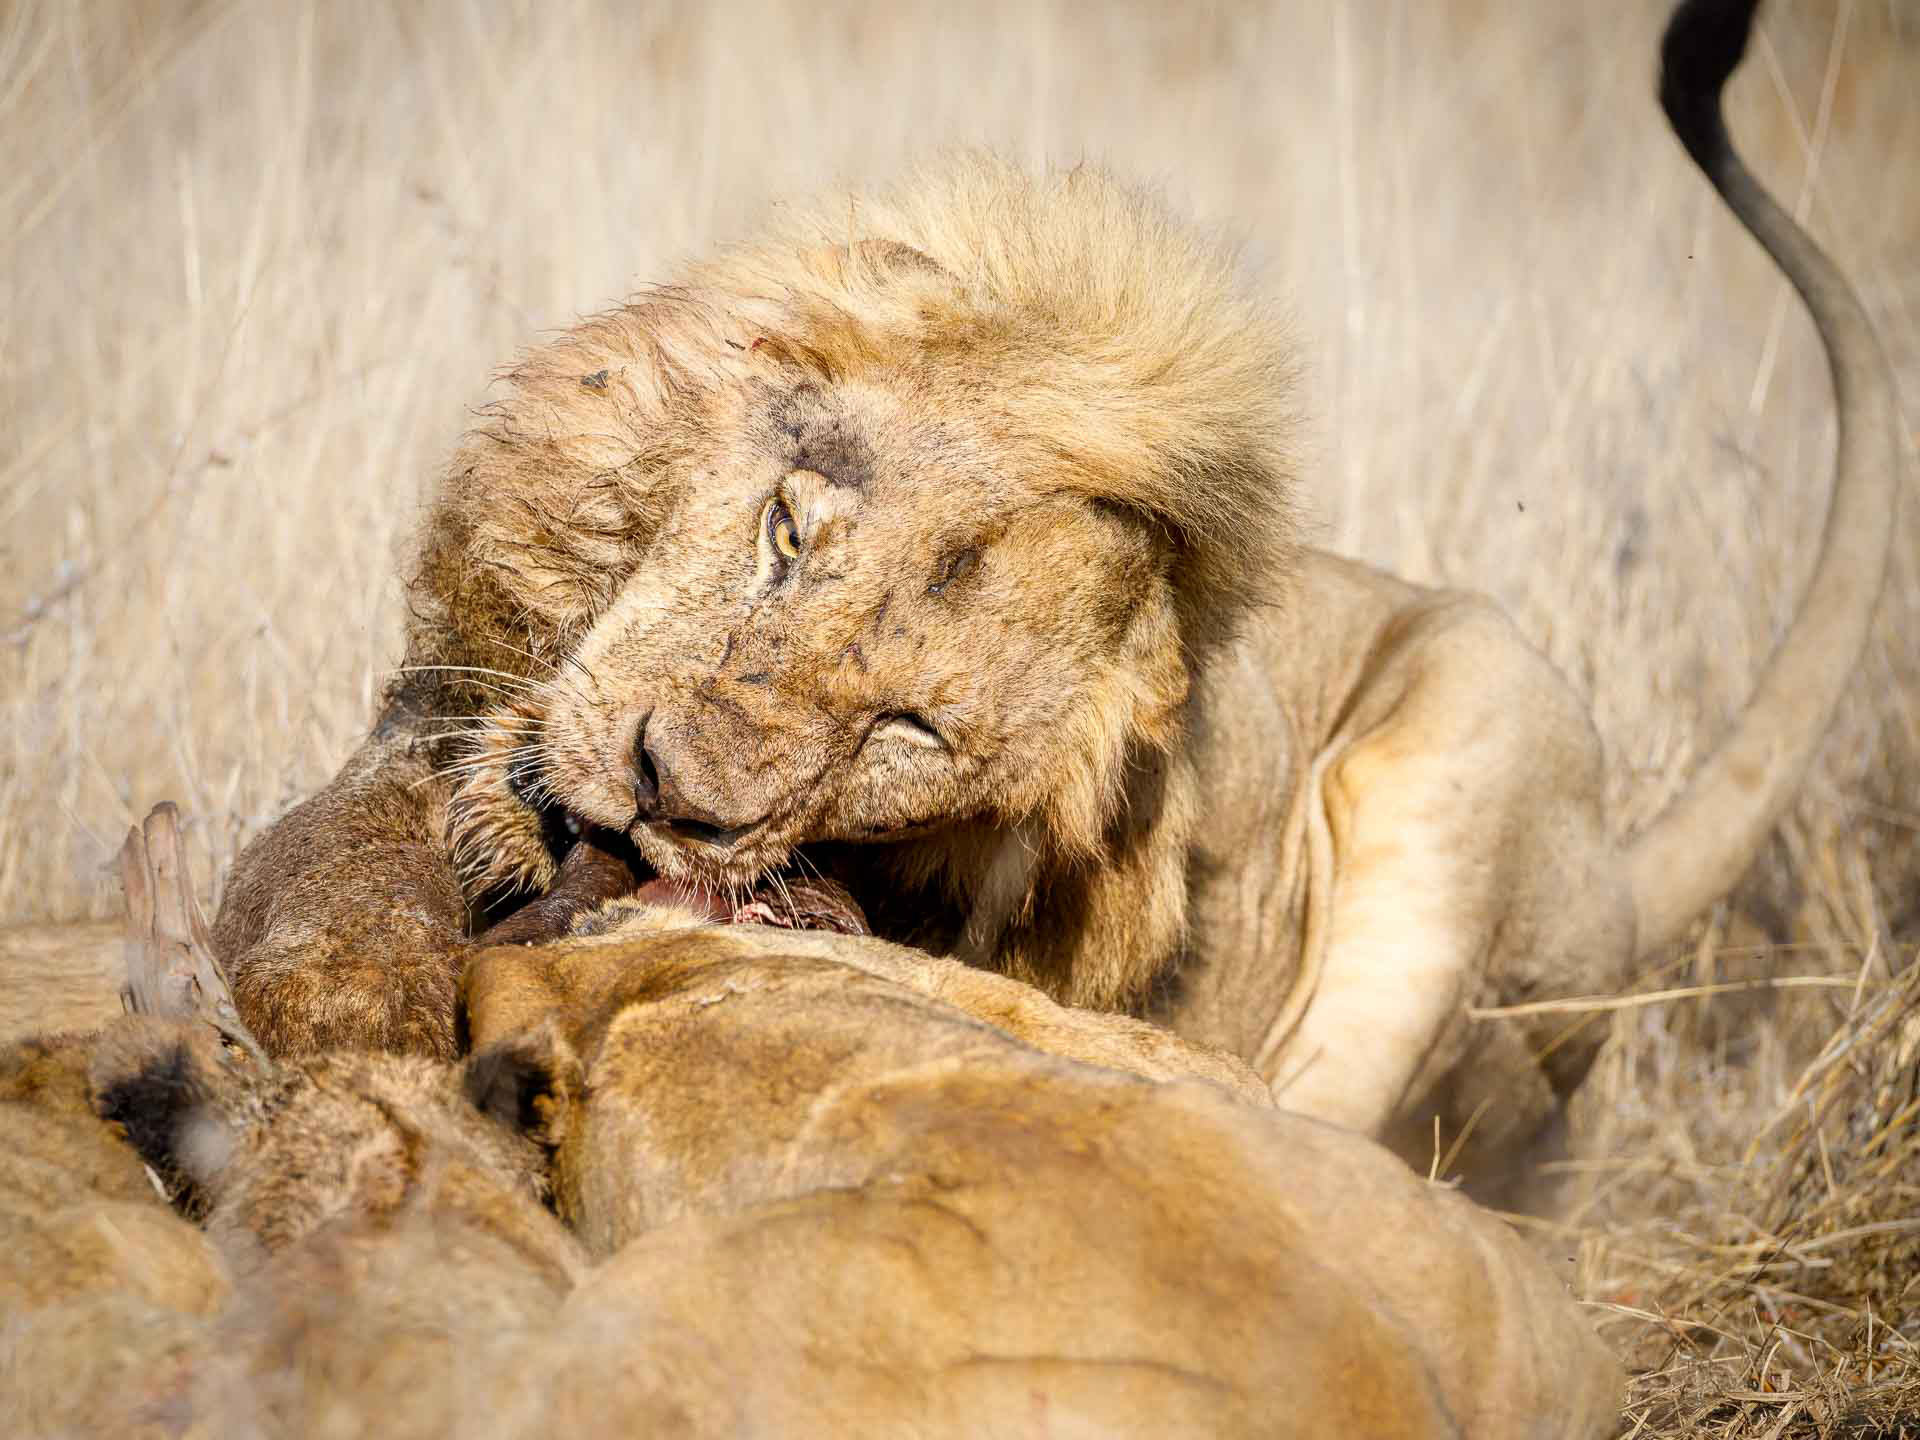 Tanda Tula - Mbiri male lion fighting over a wildebeest kill in the Greater Kruger, South Africa